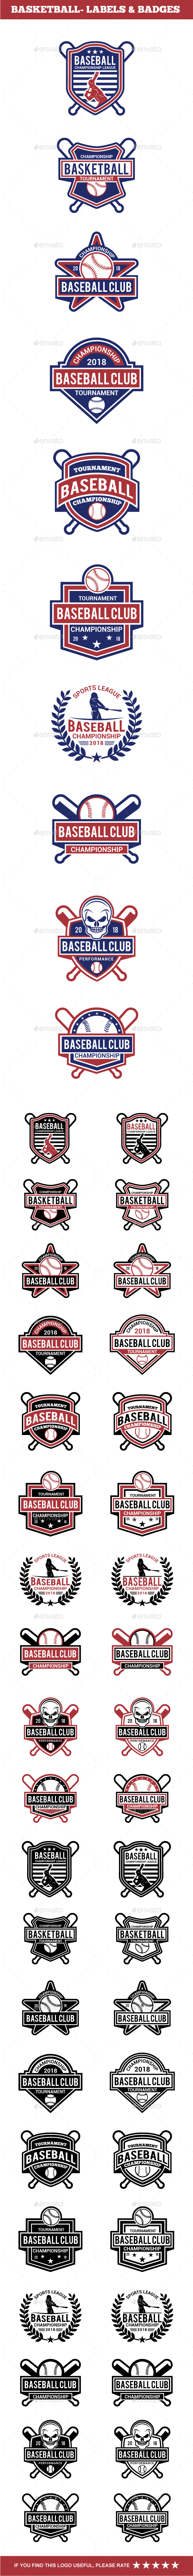 Baseball Badge & Stickers 4 - Badges & Stickers Web Elements